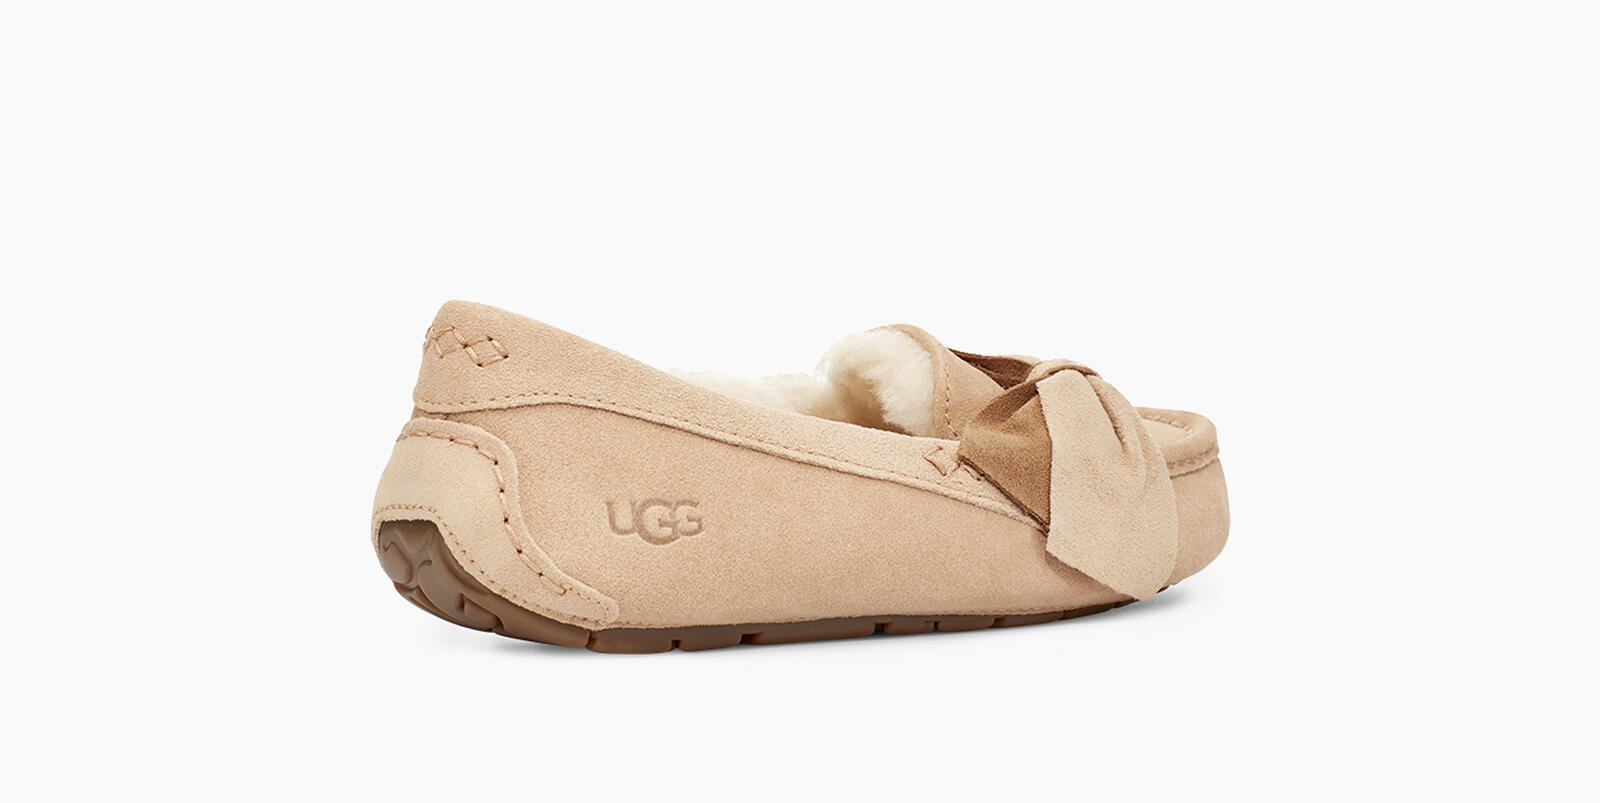 Ansley Two-Tone Bow Slipper